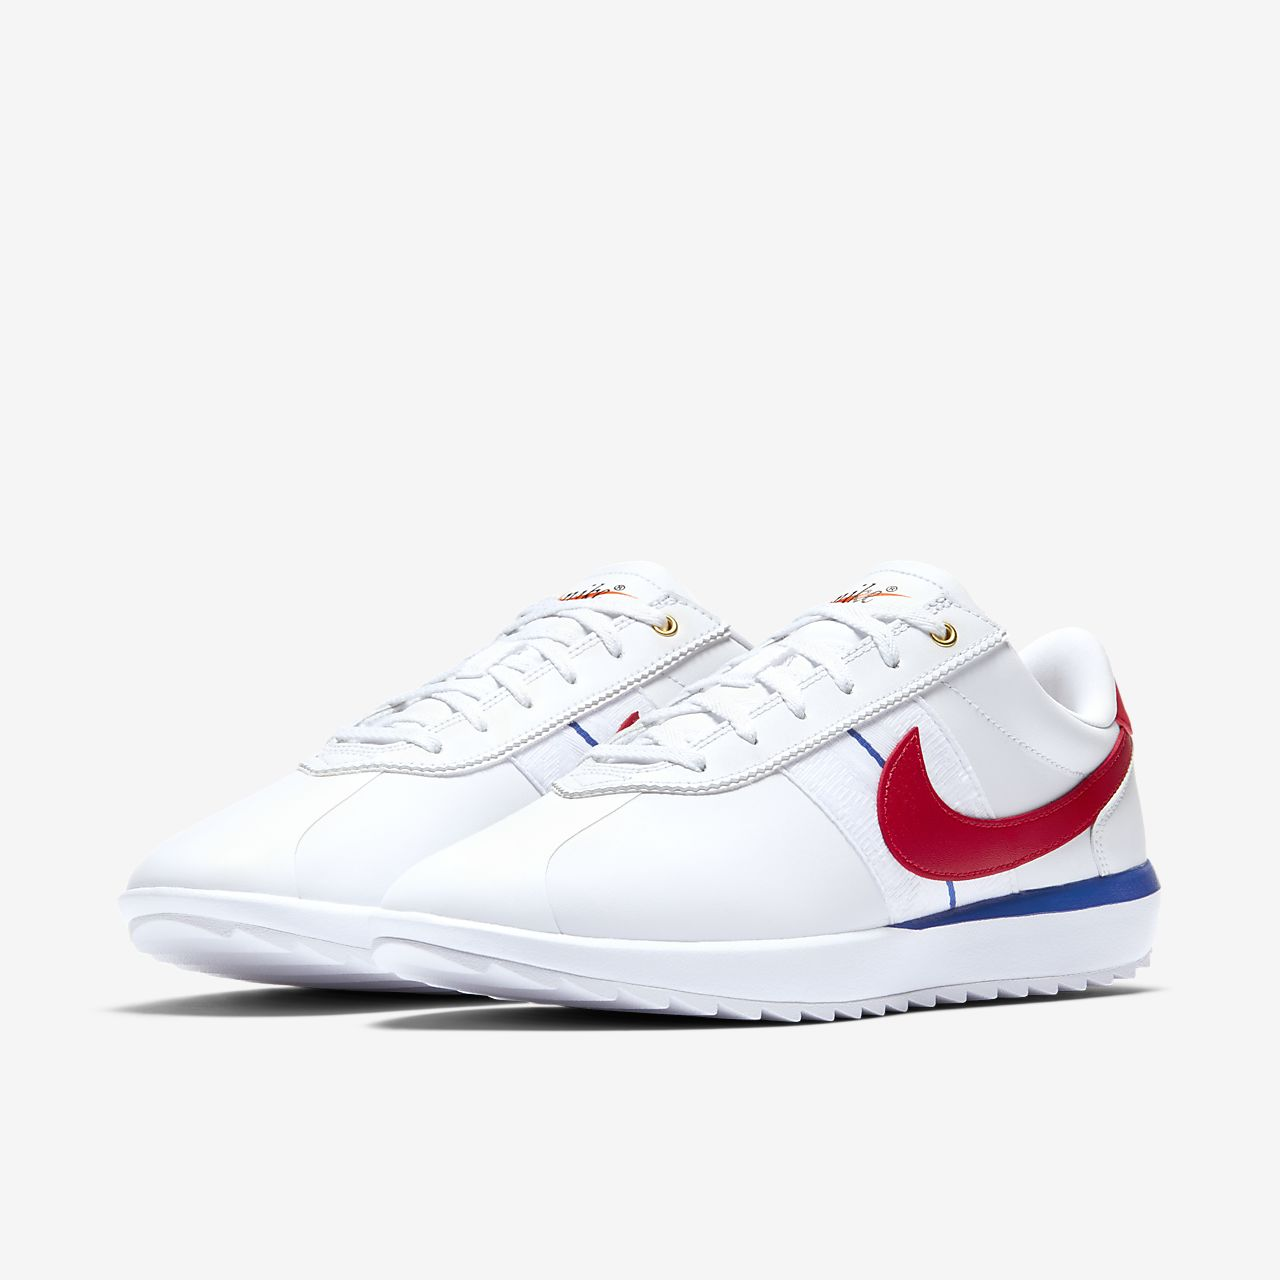 special section professional sale presenting Nike Cortez G Women's Golf Shoe